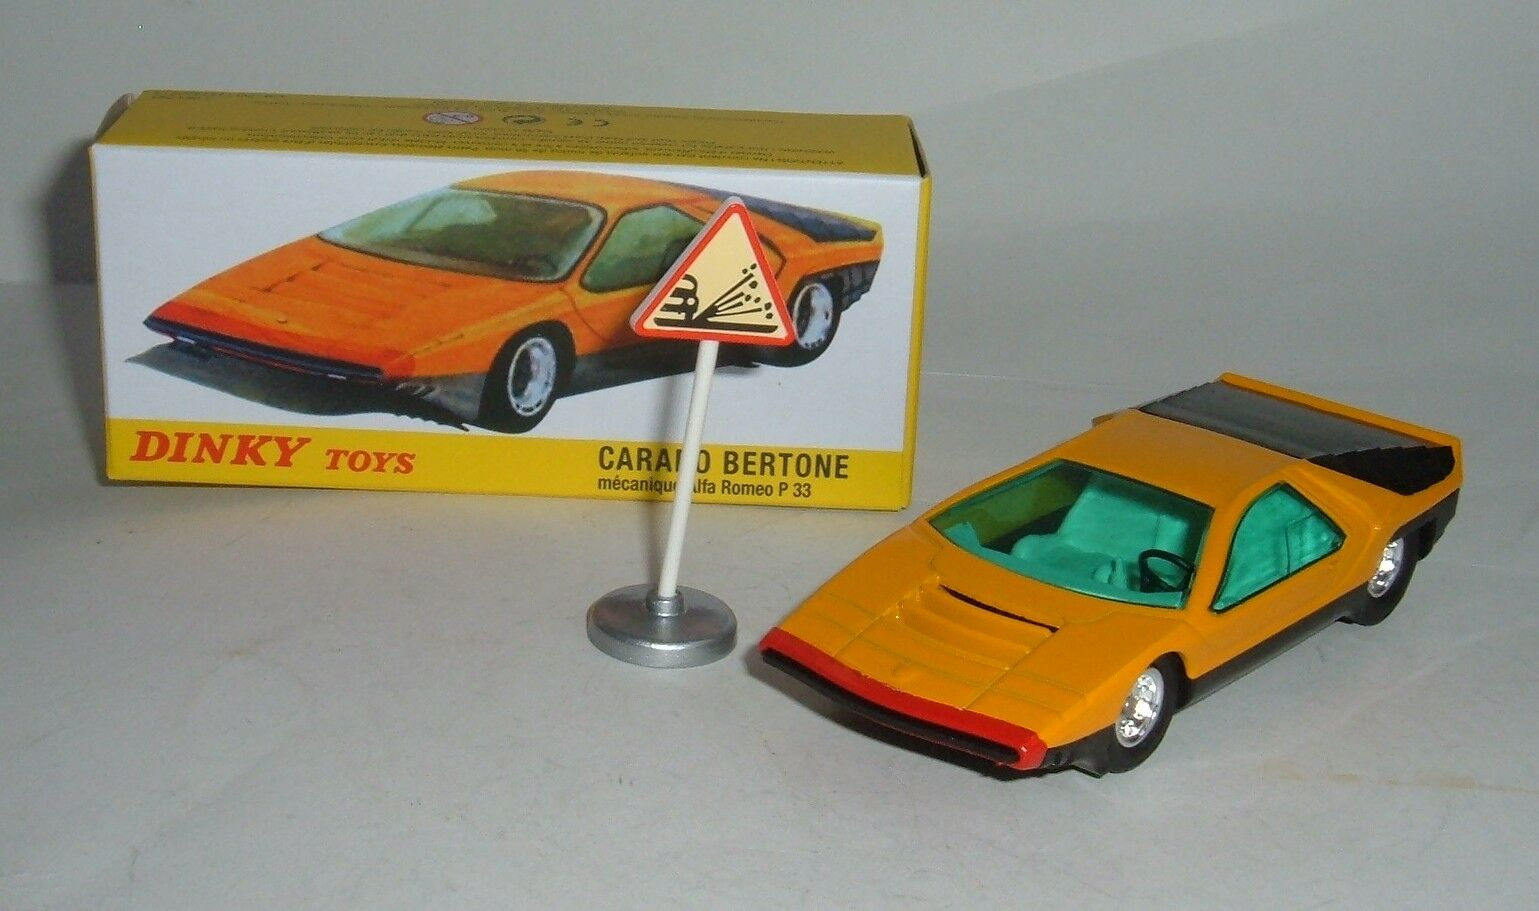 Atlas   Dinky Toys No. 1426, Carabo Bertone Mecanique Alfa Romeo, - Superb Mint